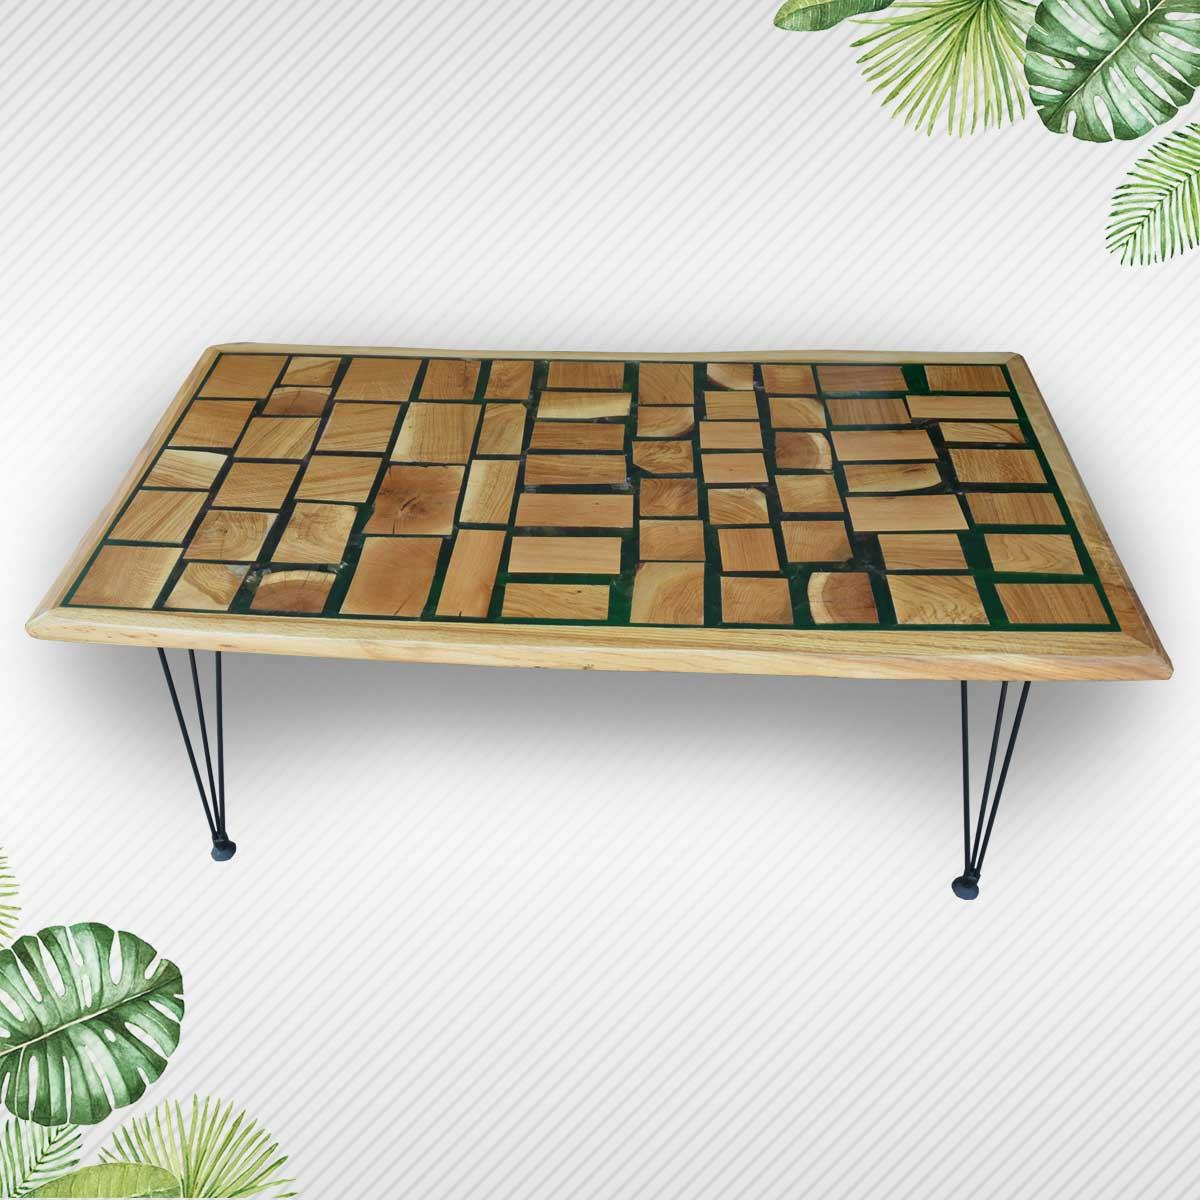 Natural Wood Slices Epoxy Resin Decorative Wooden Table Eximany